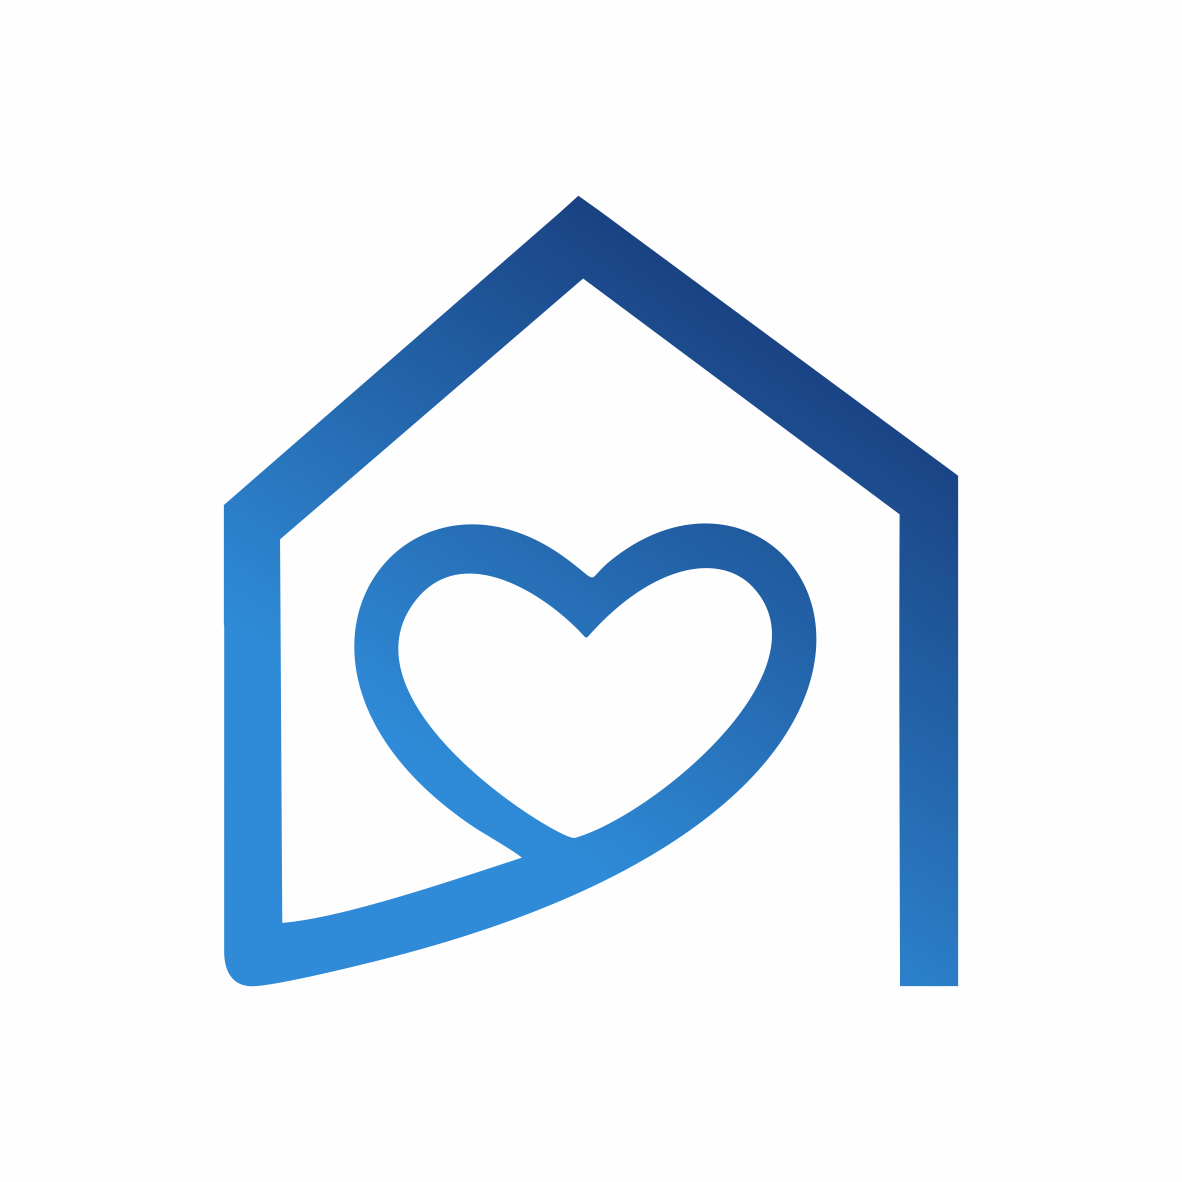 Design a logo to raise awareness about ending family homelessness in the community